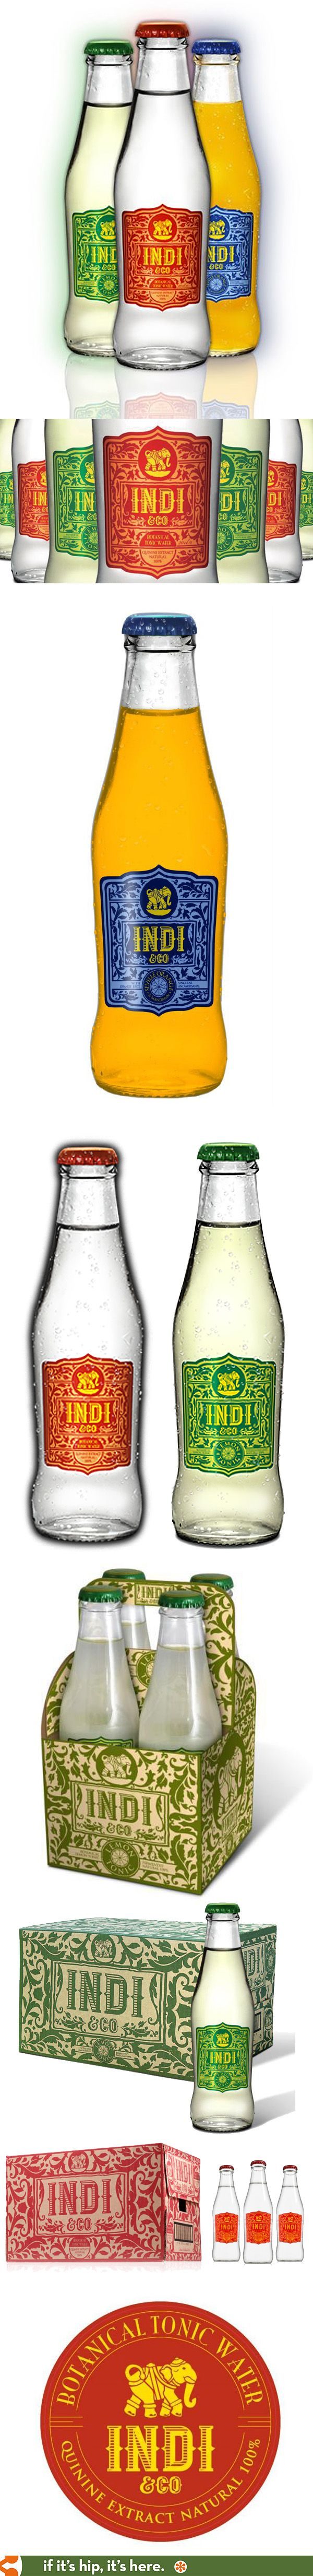 The beautiful bottles, packaging and branding for Indi & Co. Botanical Tonic Waters.